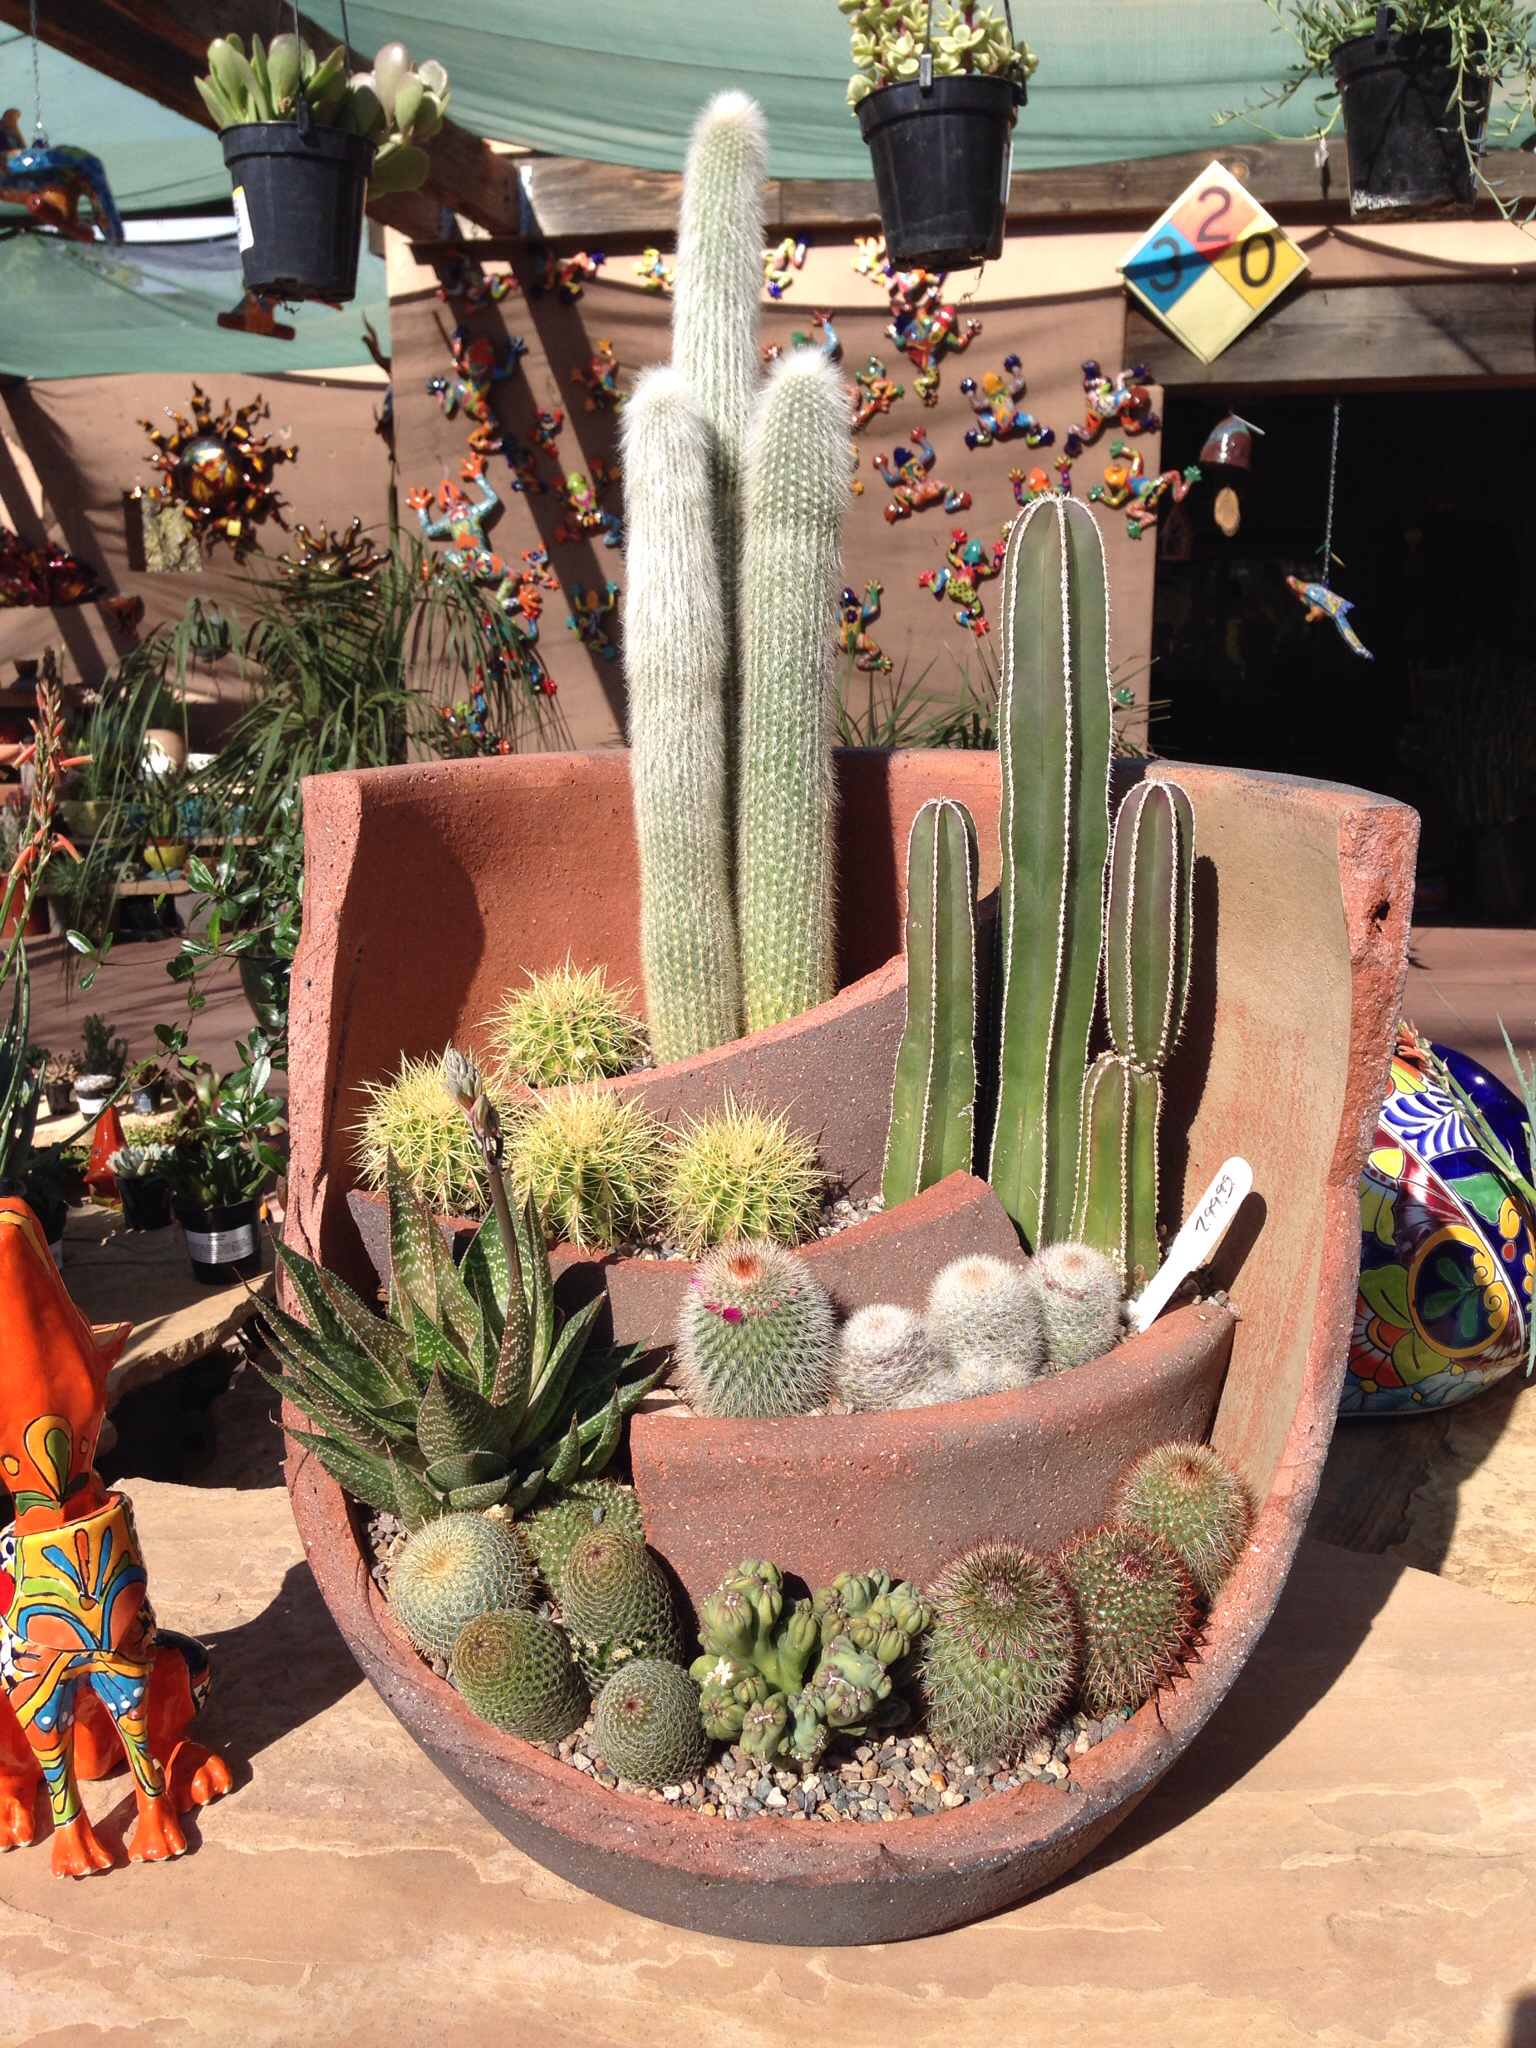 How To Plant Cacti Outdoors?